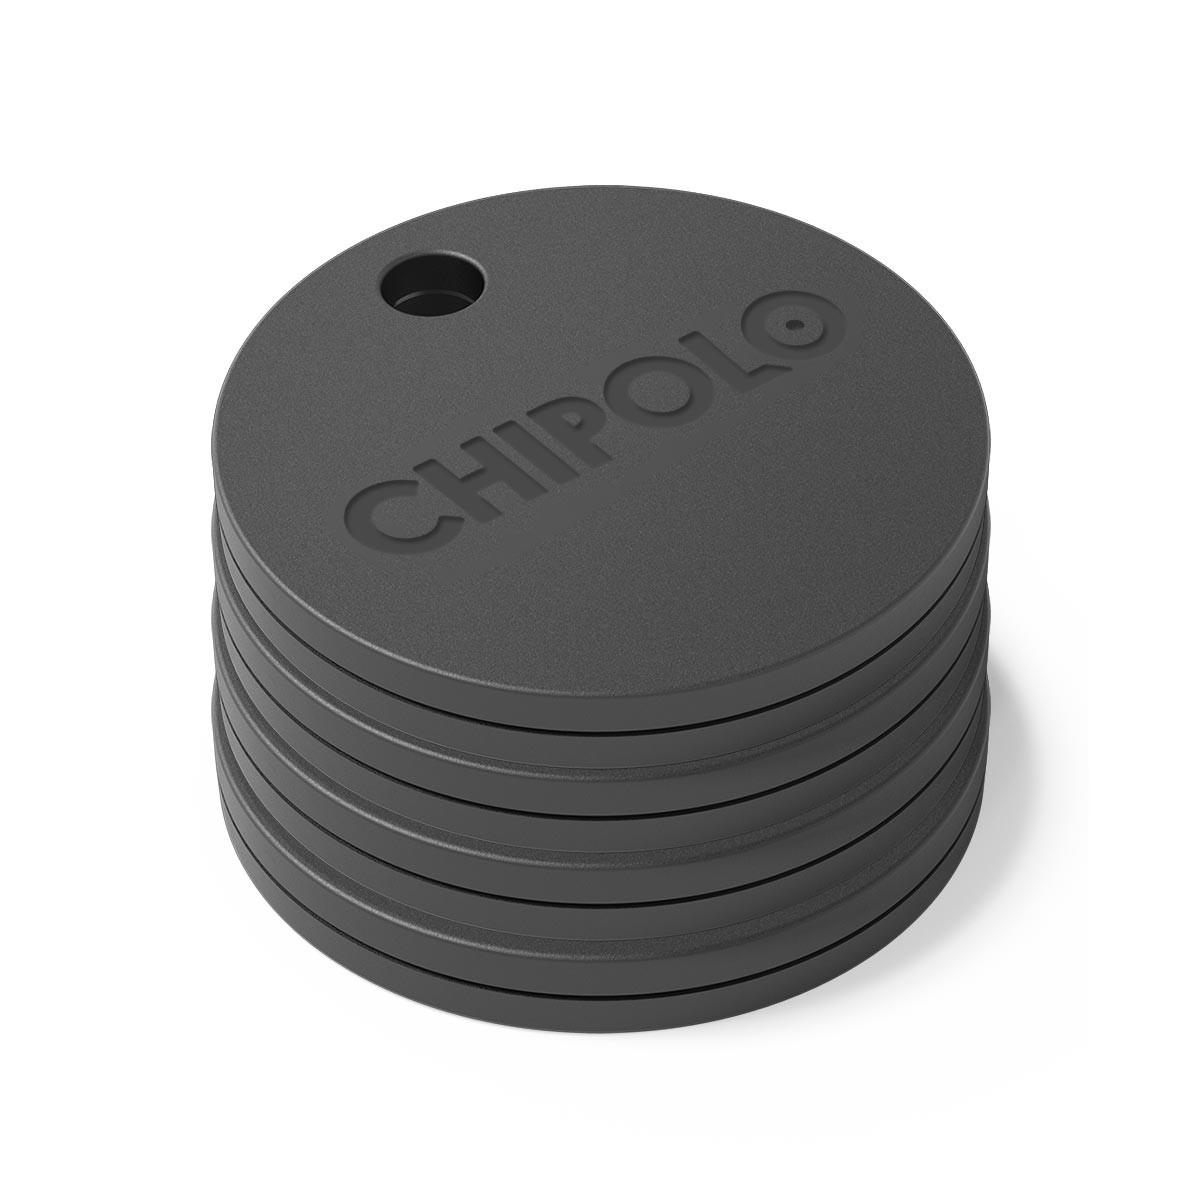 Chipolo Plus @ 100db (Charc. Black) Tag it. Find it. Bluetooth Alarm System: iOS & Android συναγερμός απόστασης αντικειμένων!!!